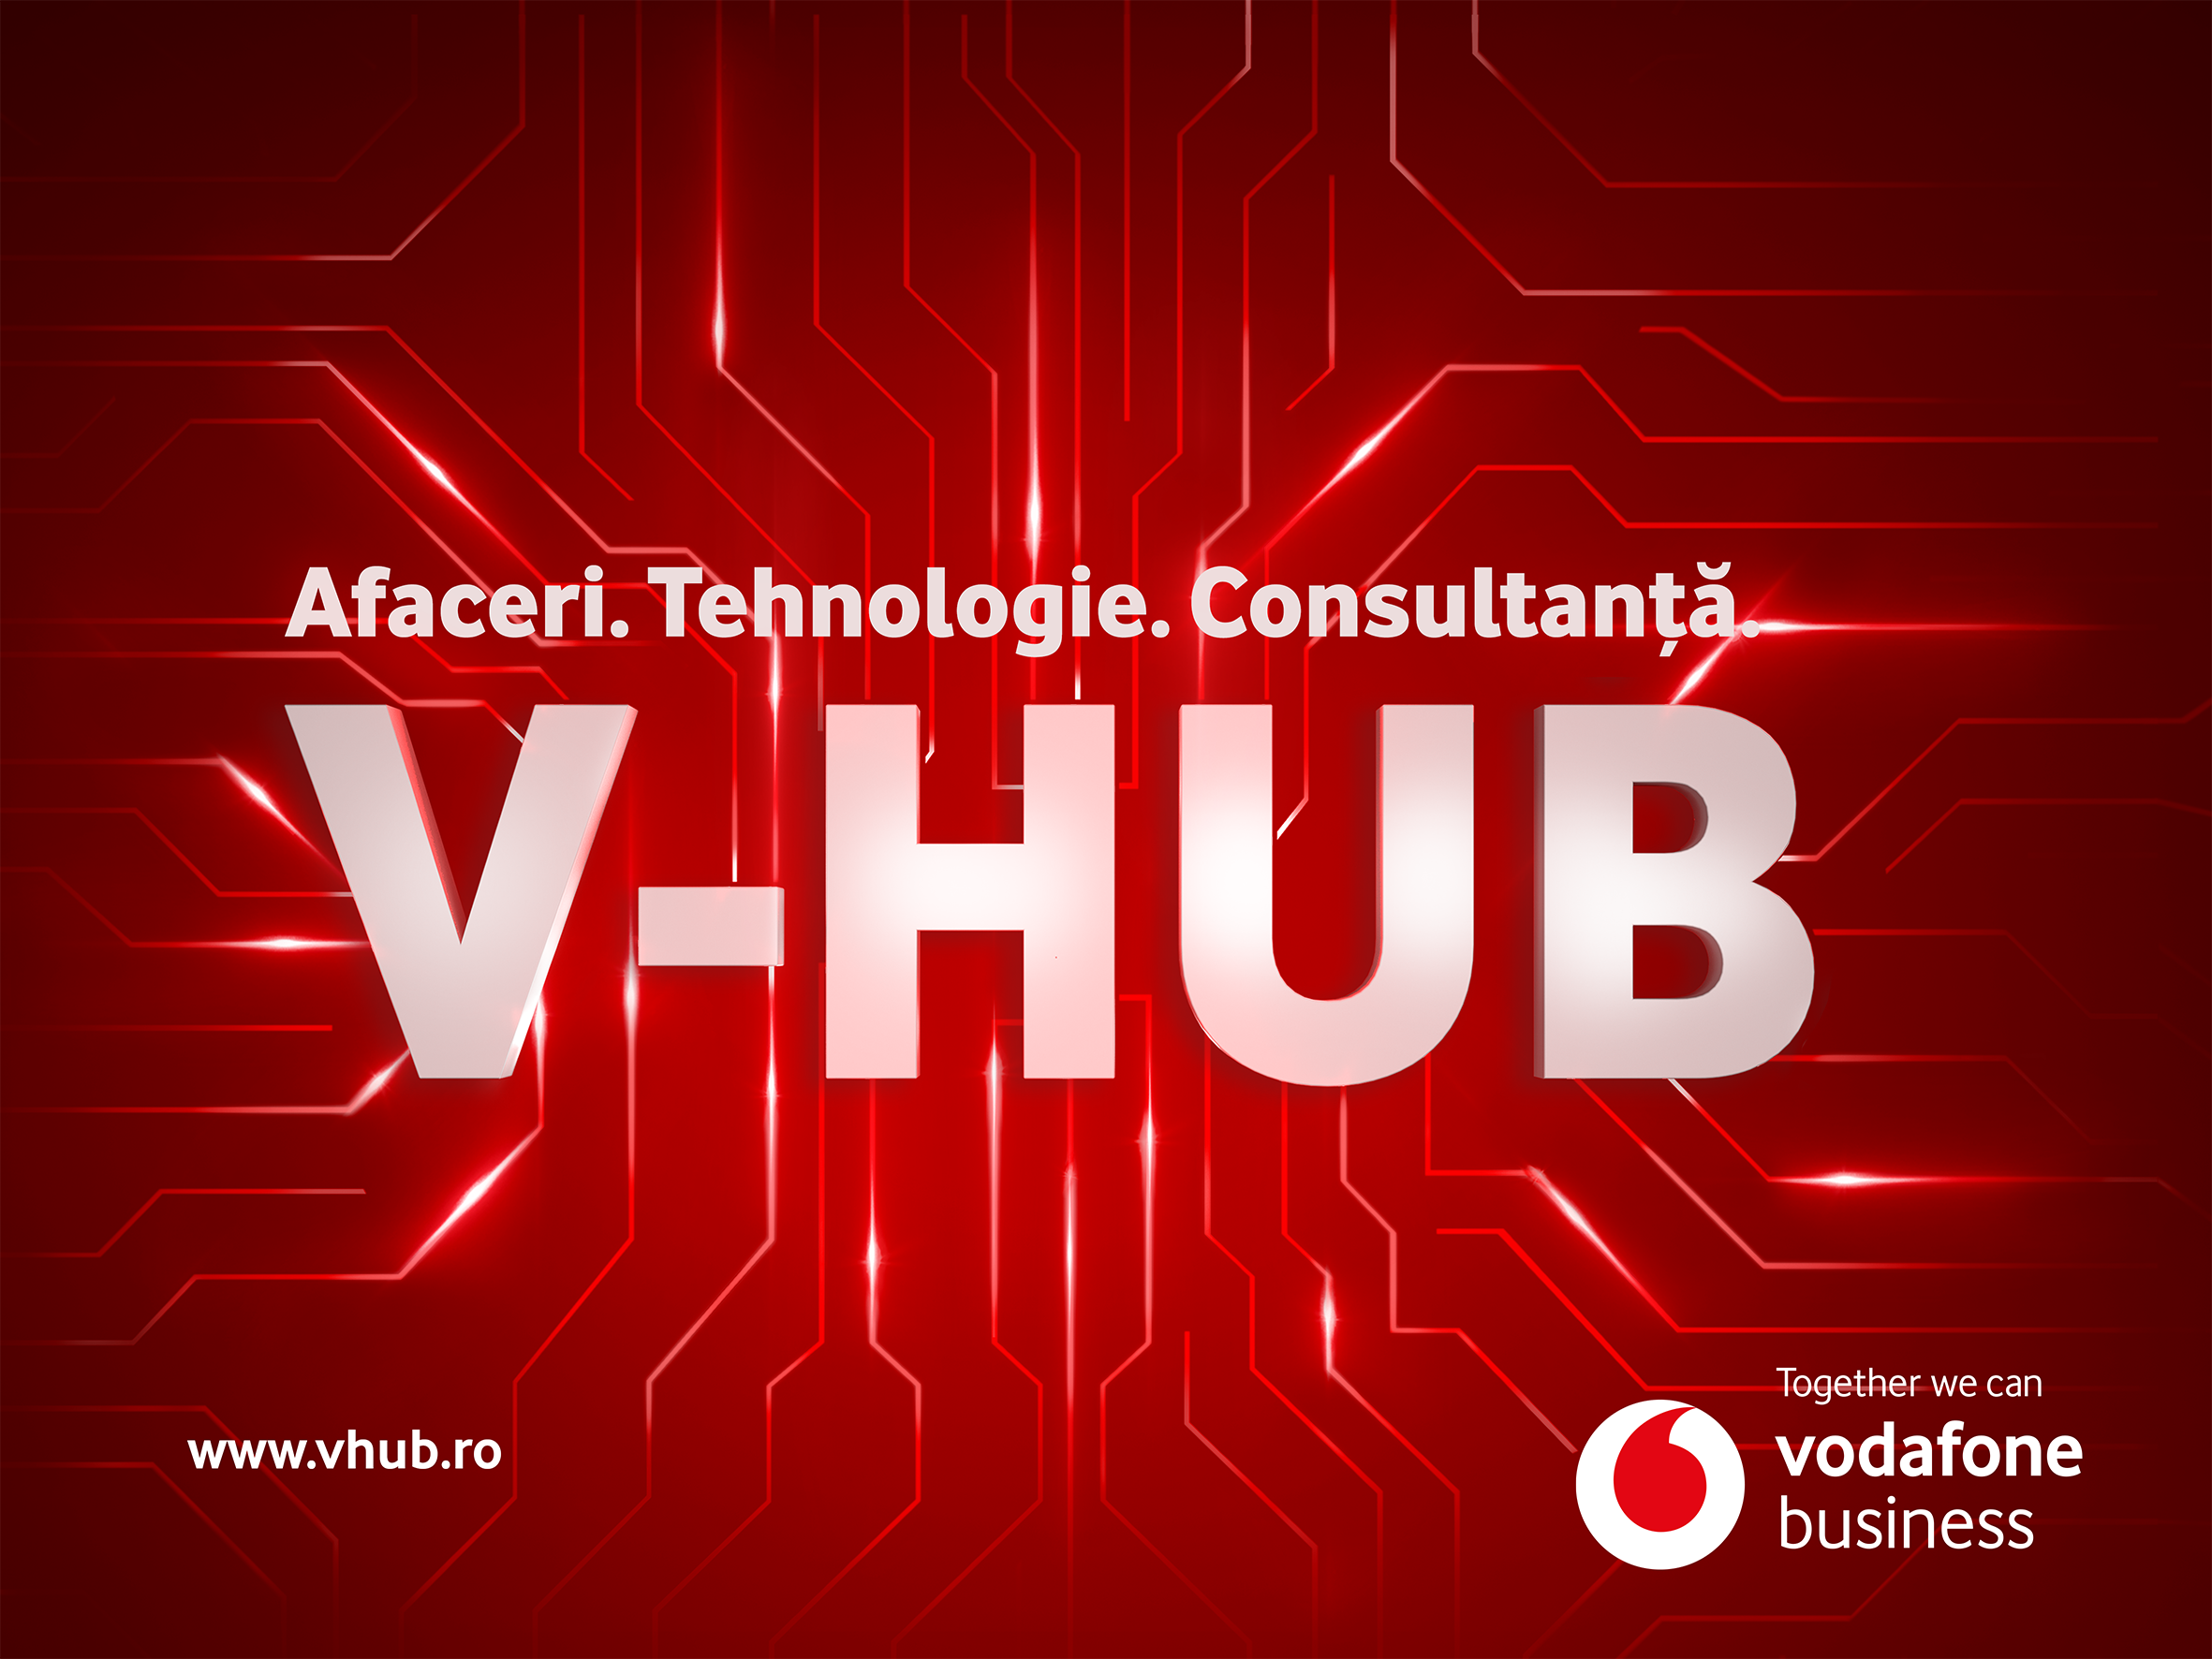 Vodafone Business extends digitalization support for SMEs through V-Hub with free testing option of the digital solutions